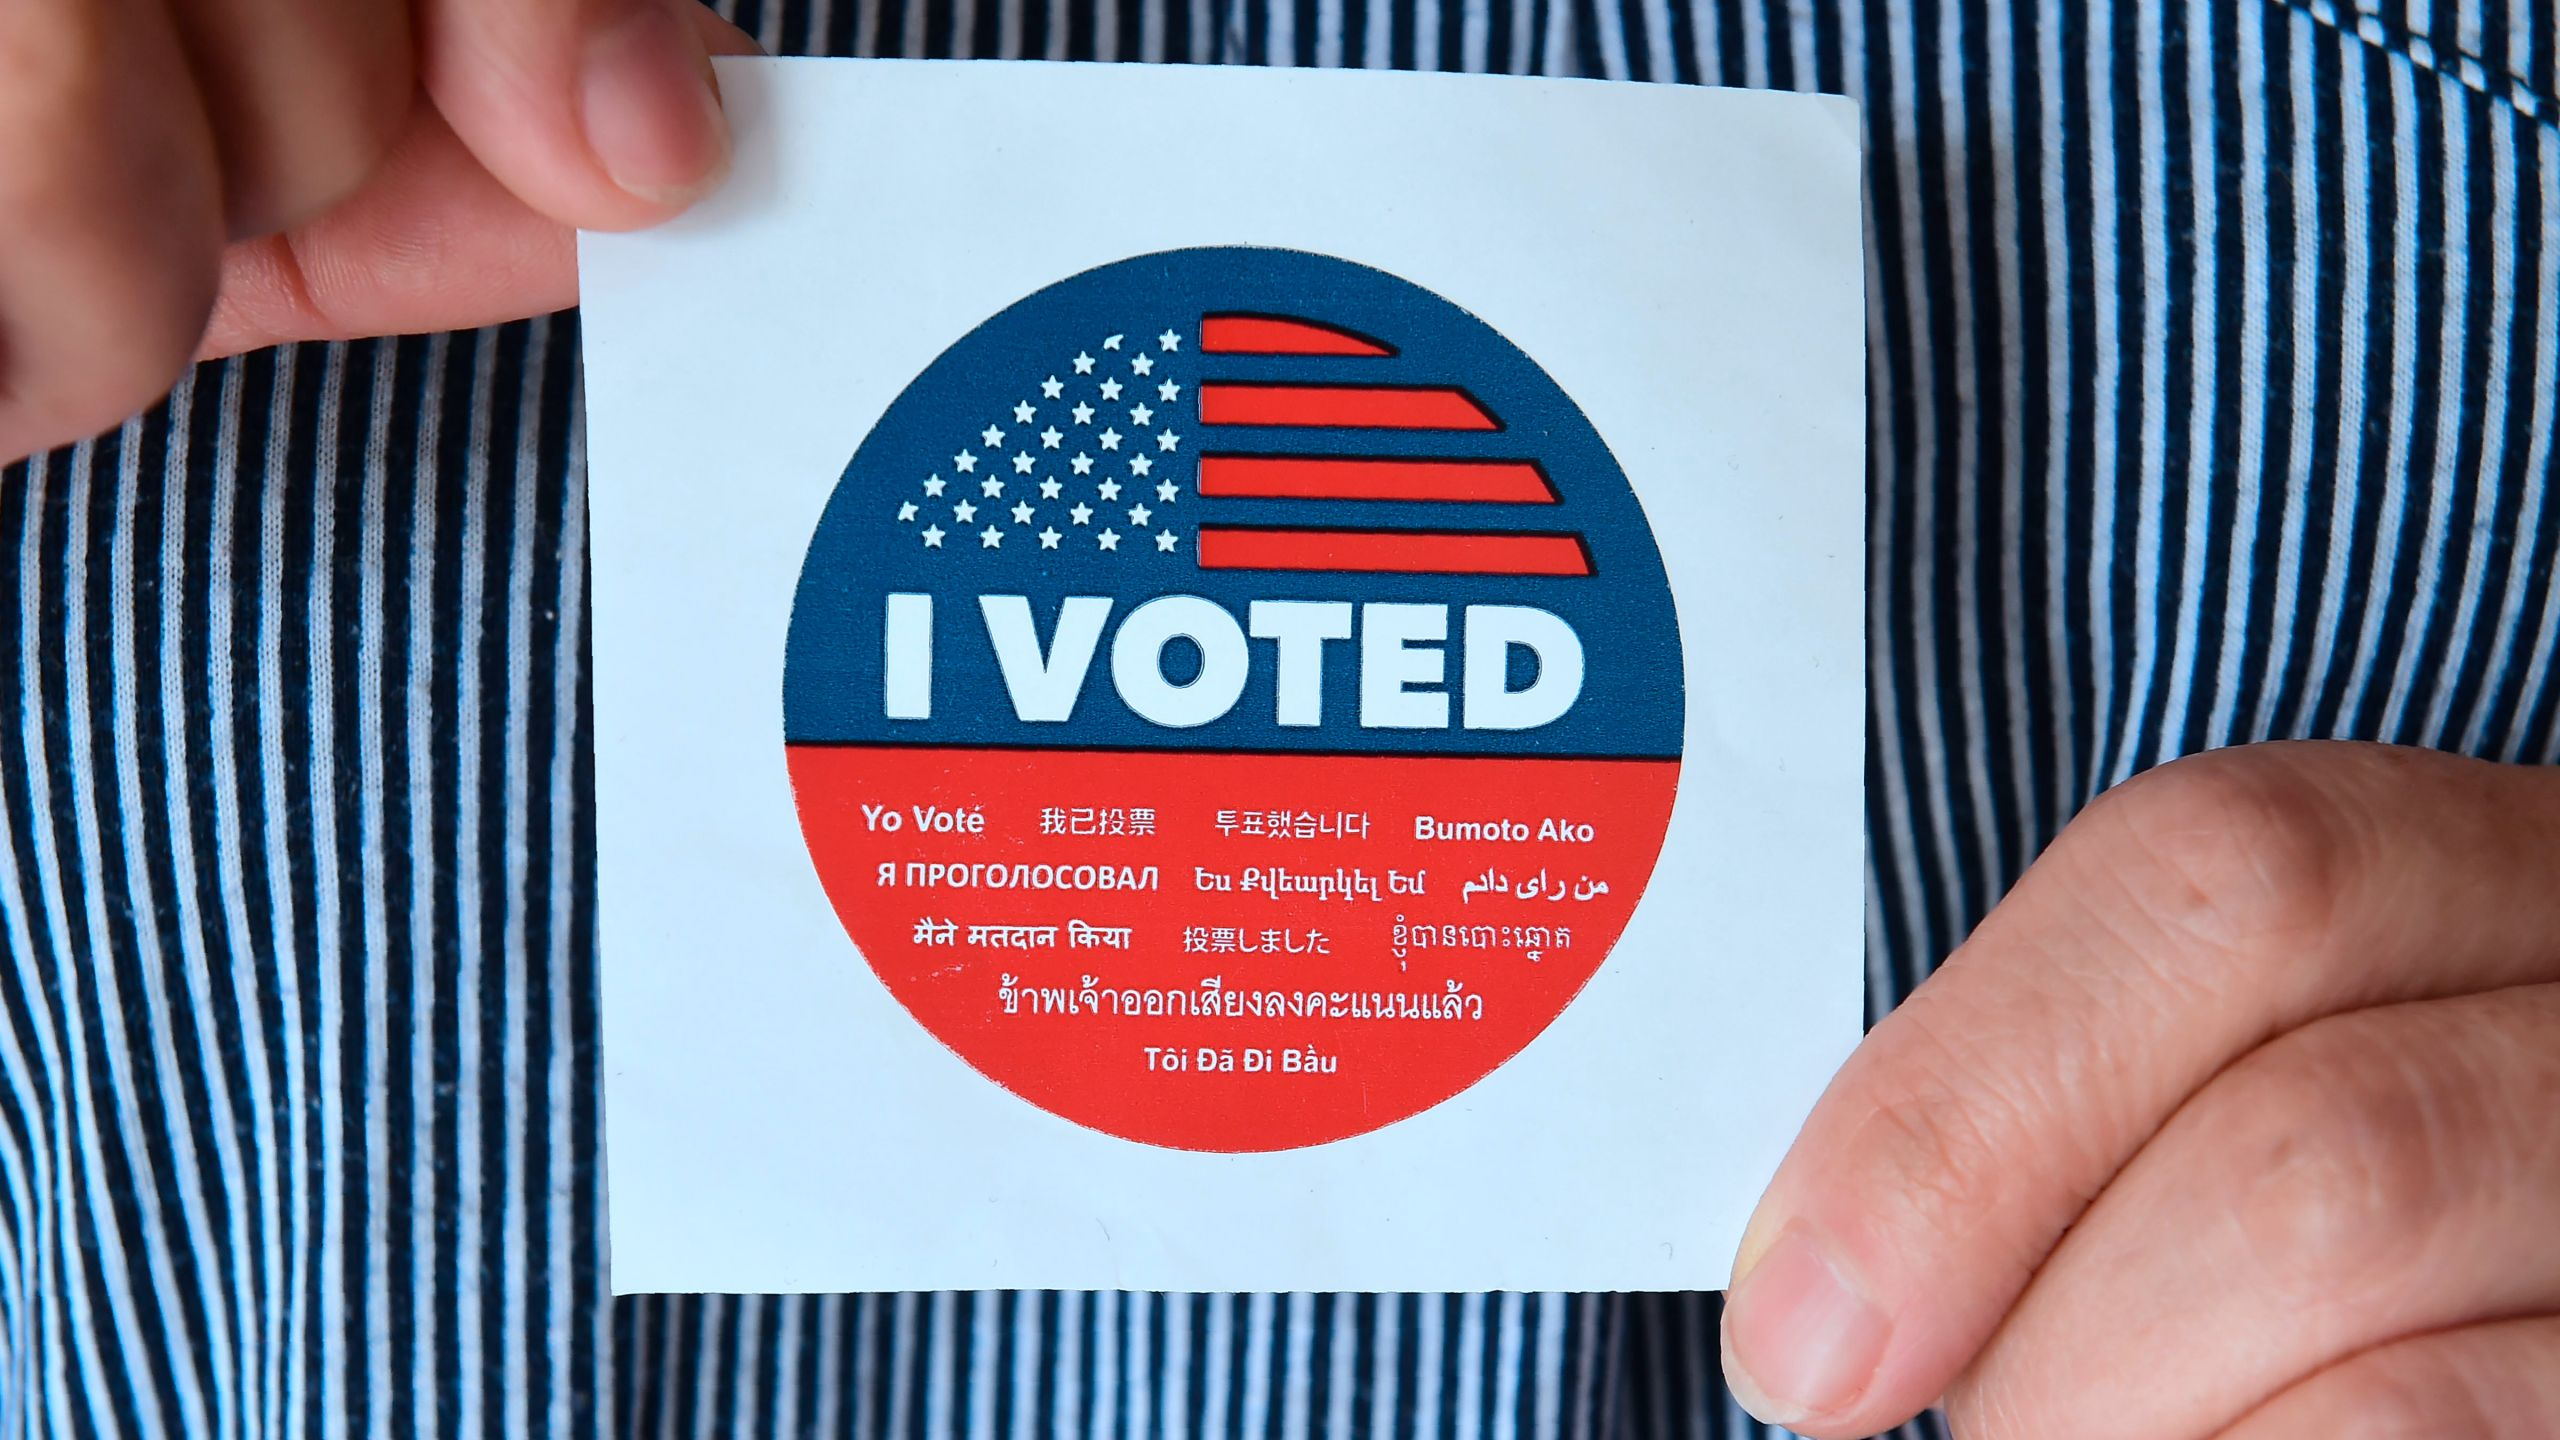 A woman displays a sticker given to voters outside a polling station in Los Angeles on June 5, 2018. (Credit: Frederic J. Brown / AFP / Getty Images)